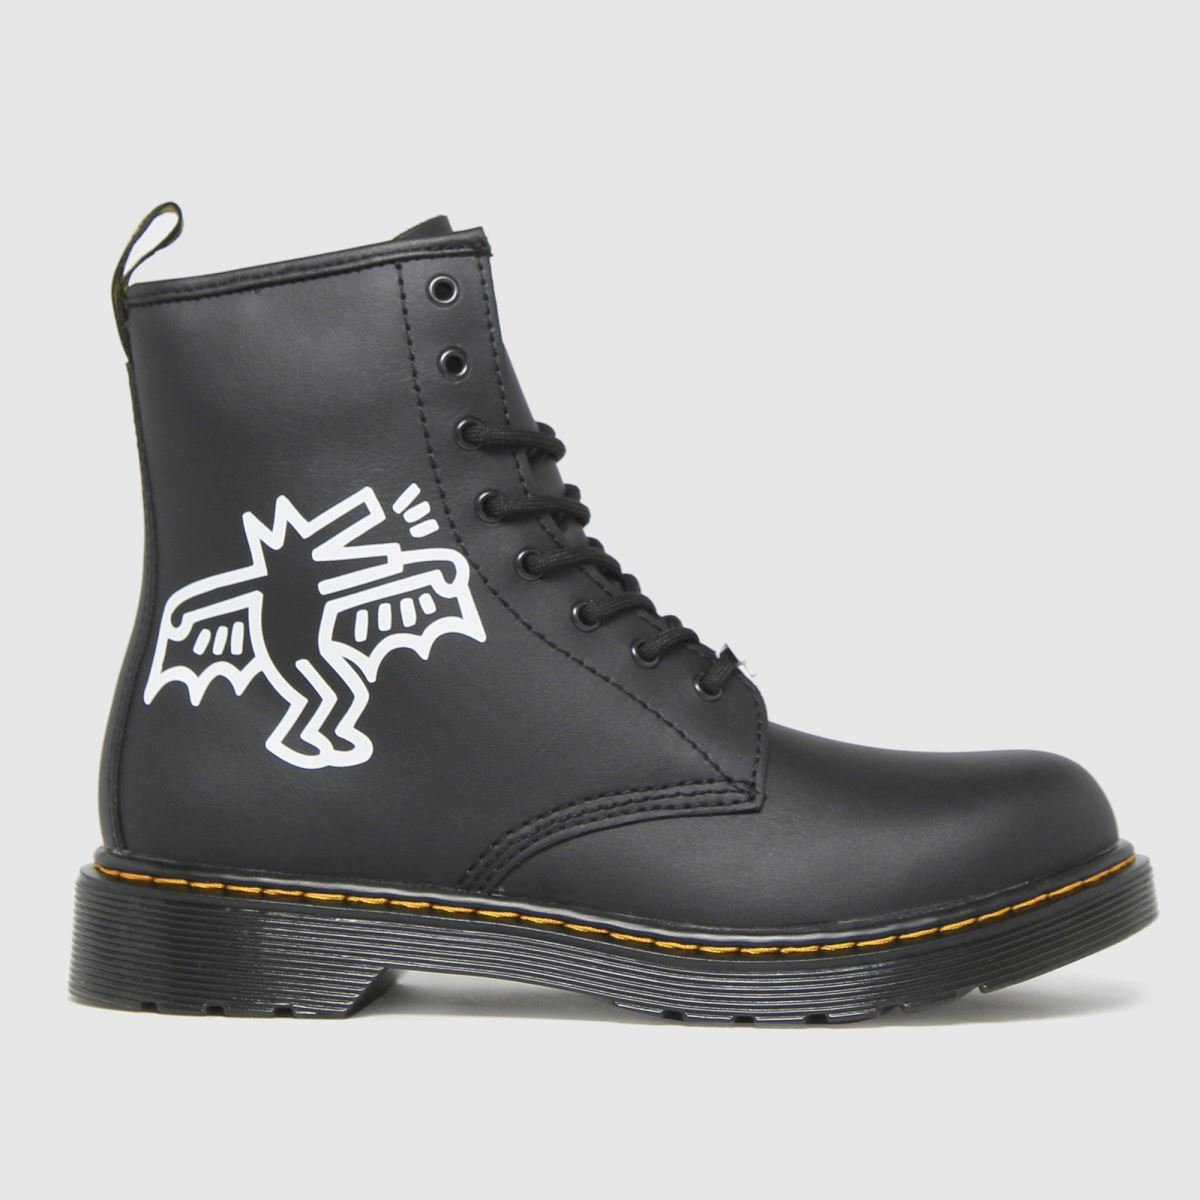 Dr Martens Black & White 1460 Keith Haring Boots Youth